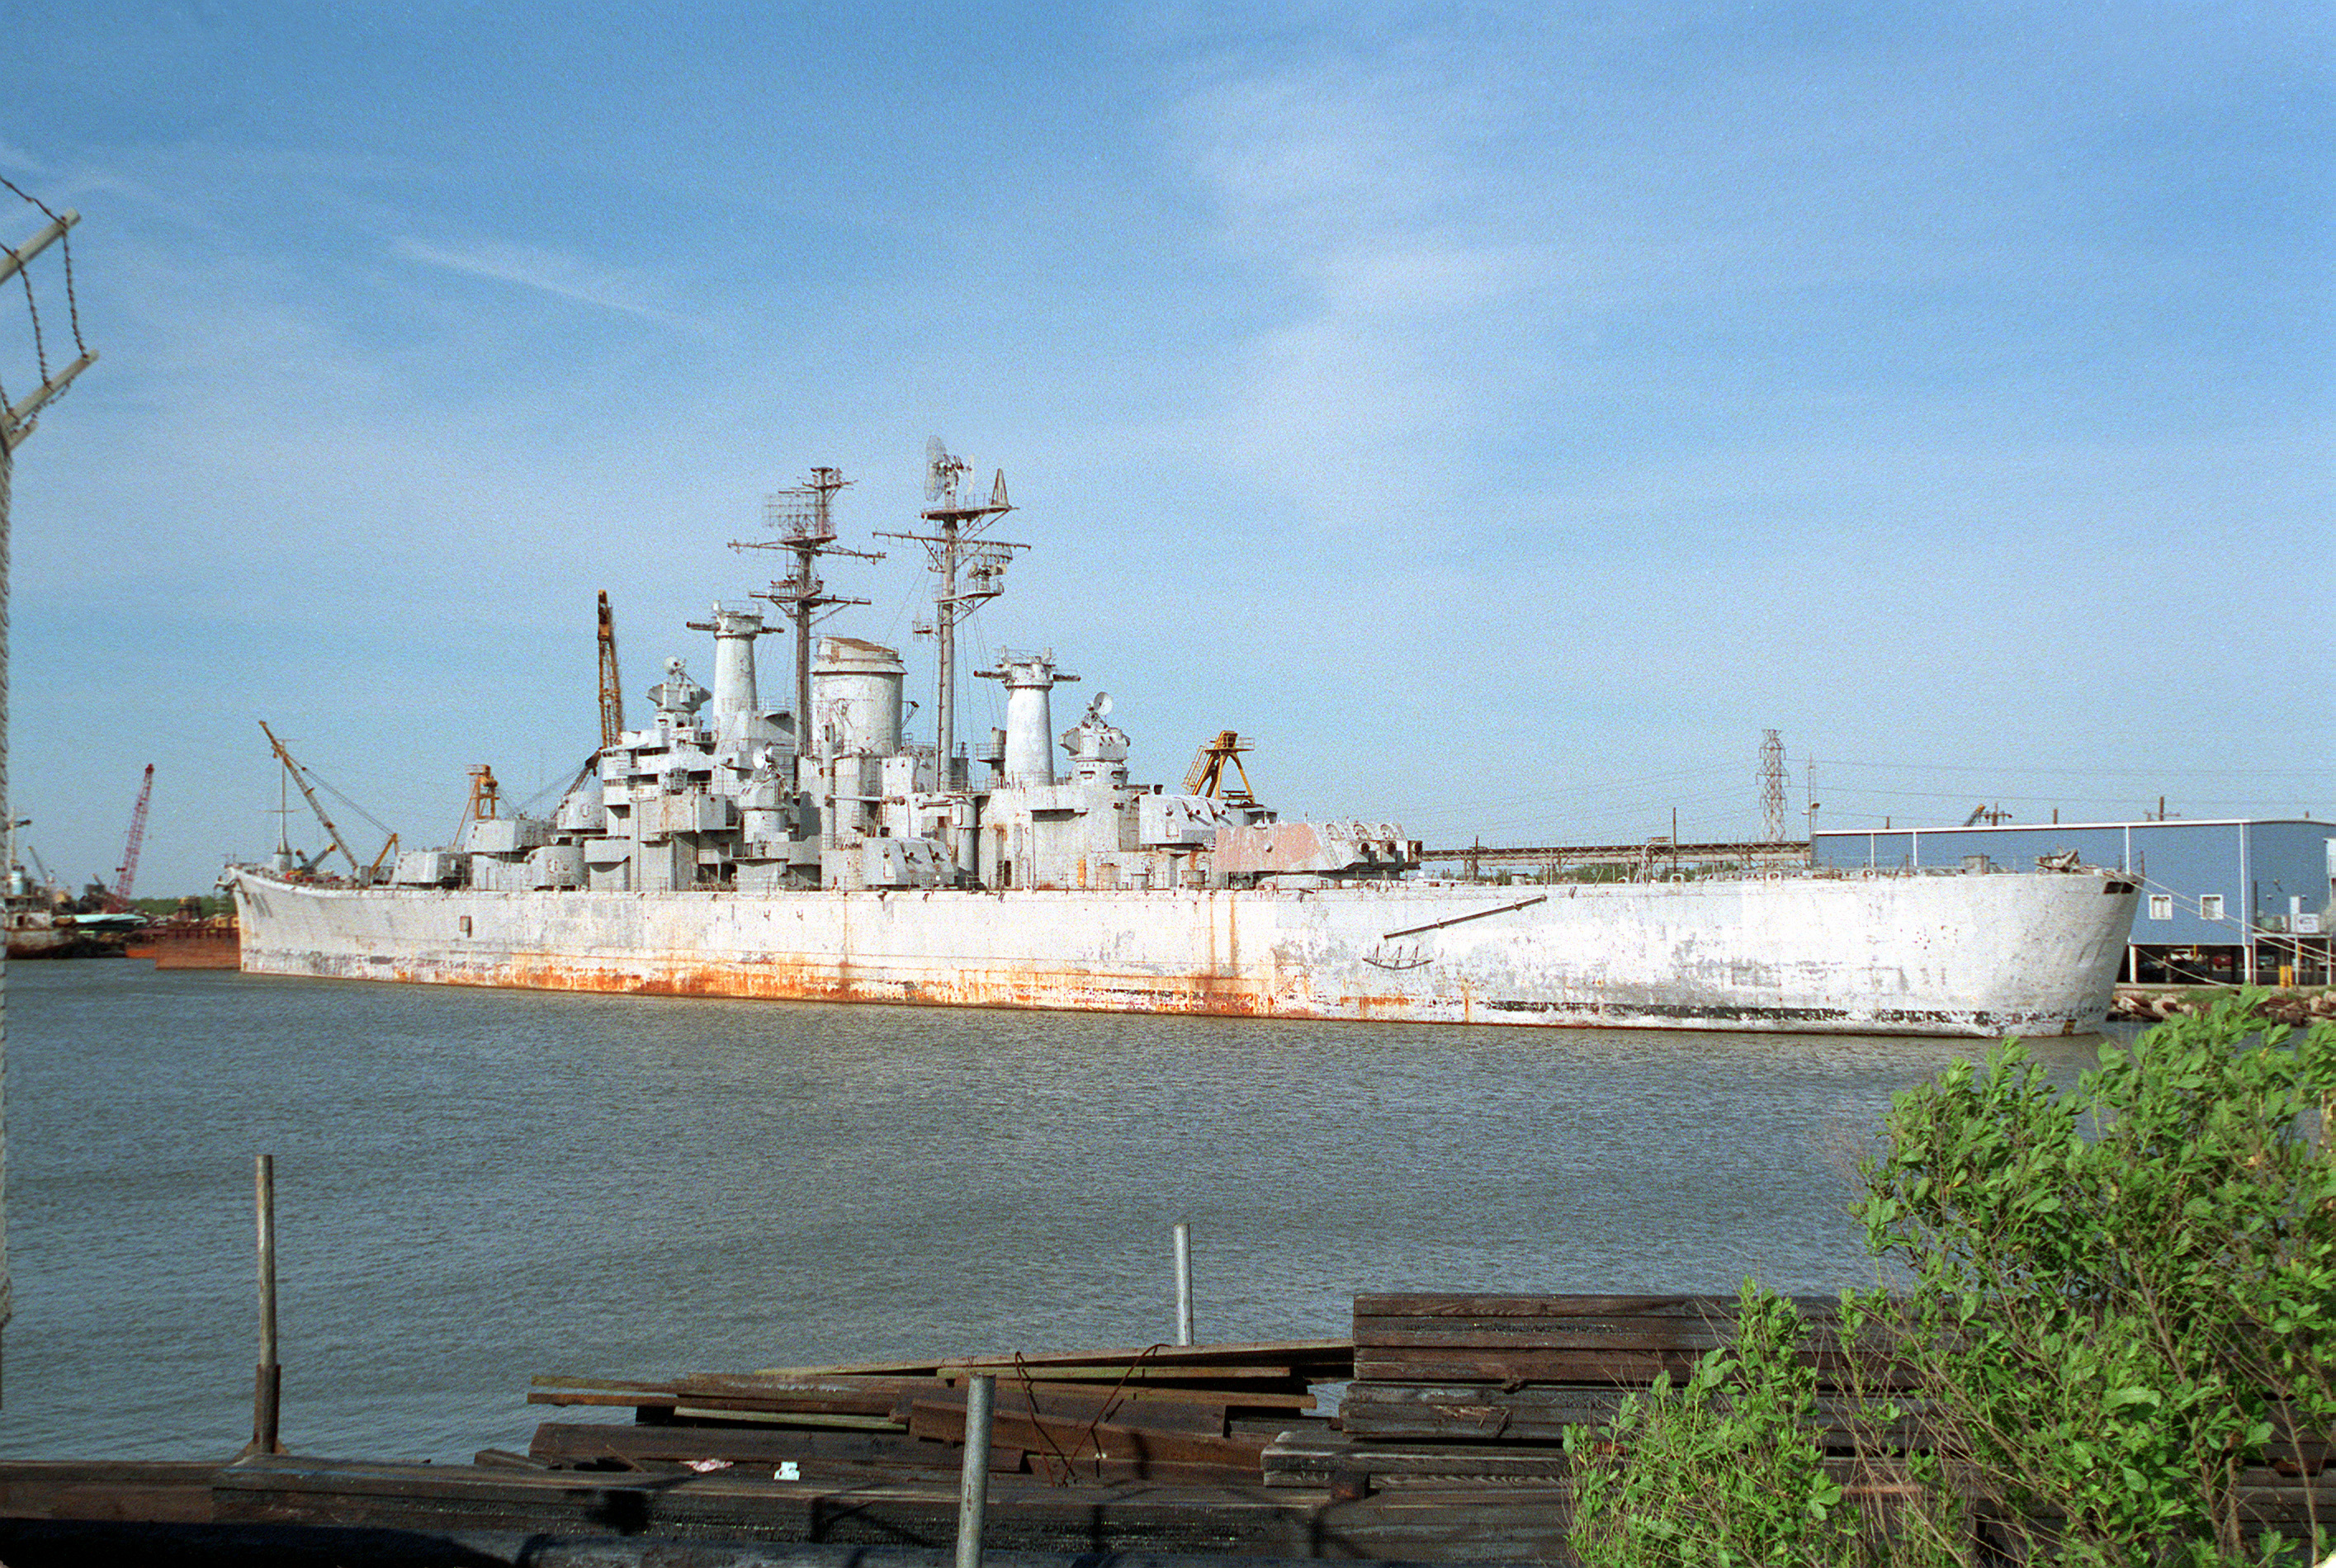 USS_Newport_News_%28CA-148%29_being_scrapped_in_1993.JPEG